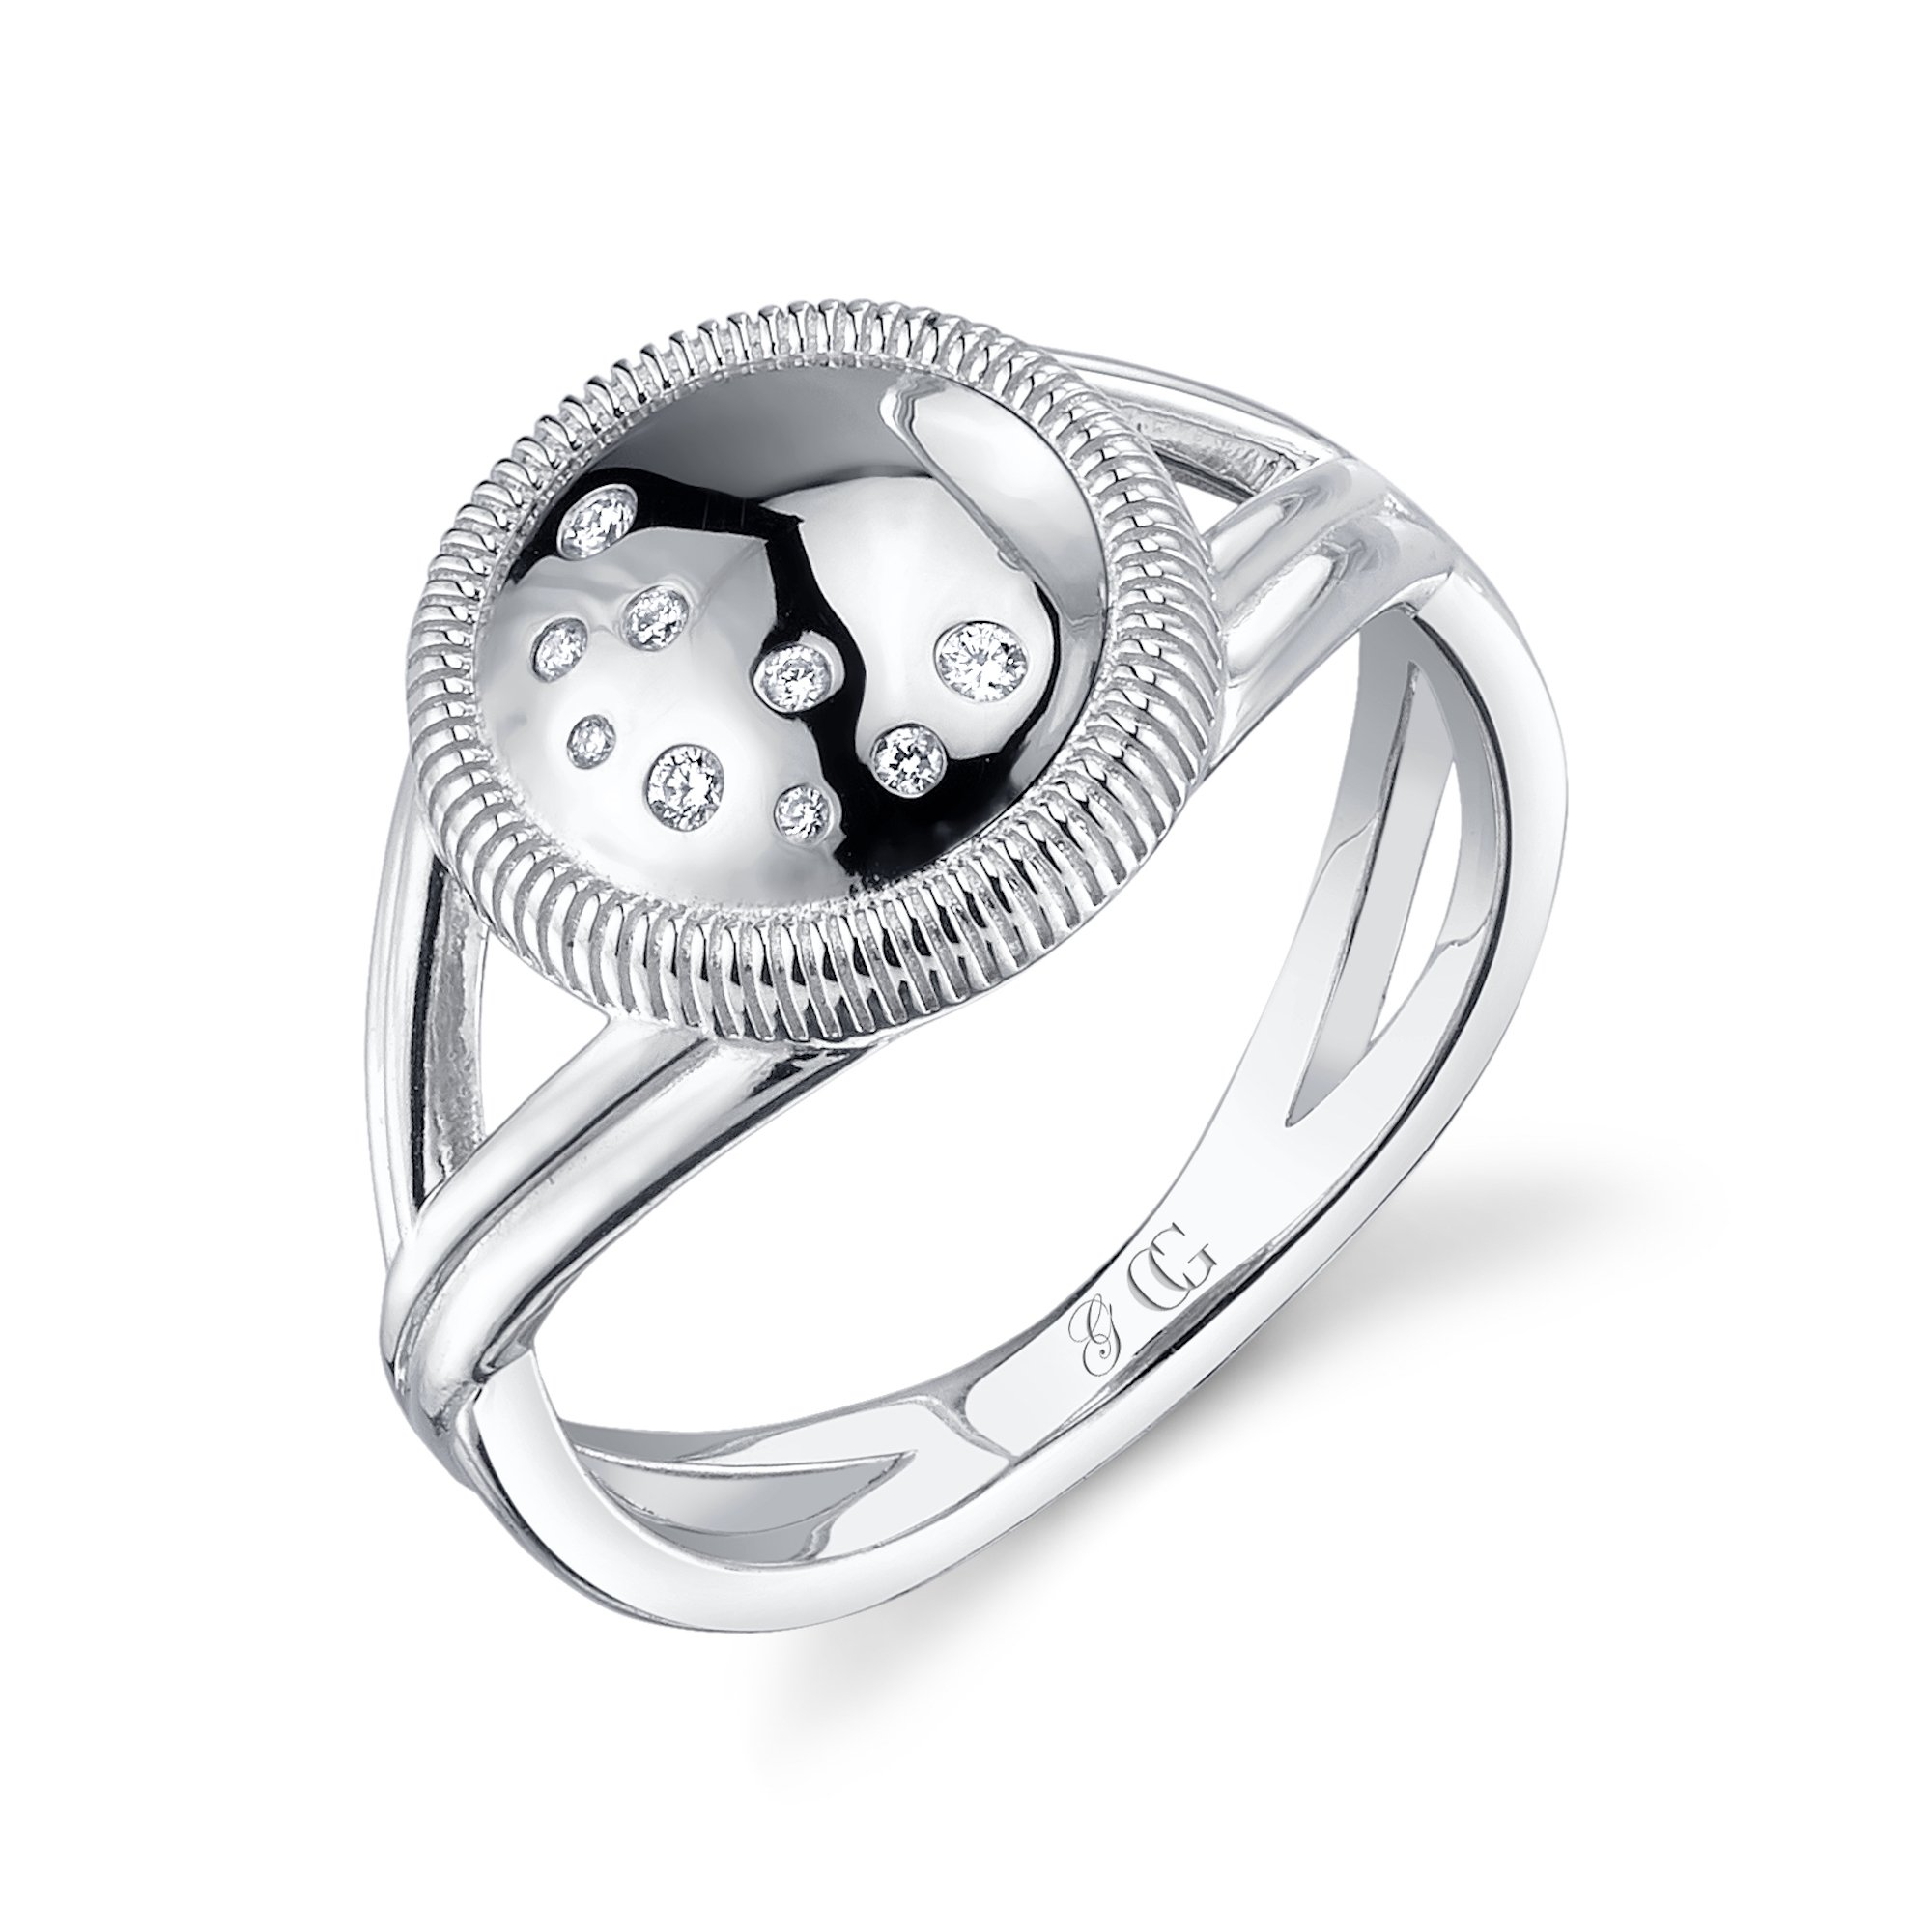 CHARLIZE GADBOIS Sterling Silver Diamond Disk Ring Rhodium Plated (0.055 cttw,I2-I3 Clarity) Size 8